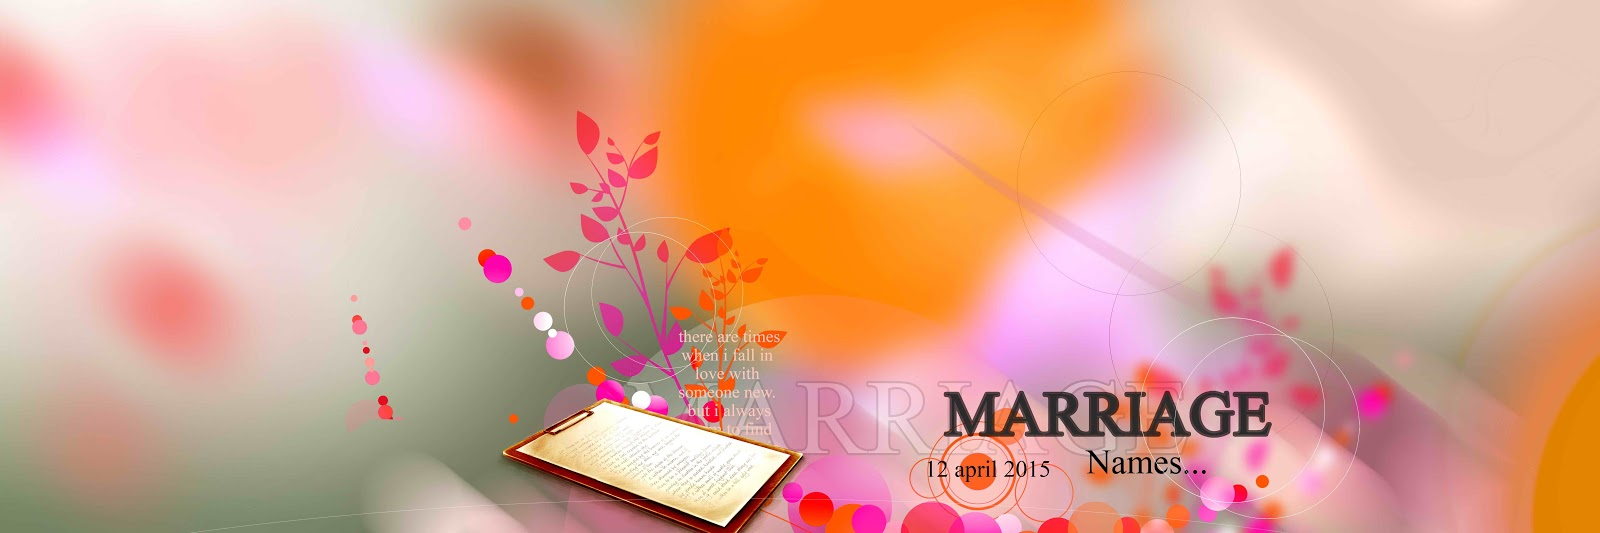 Wedding Background HD 12x36 Psd Files Free Download StudioPk